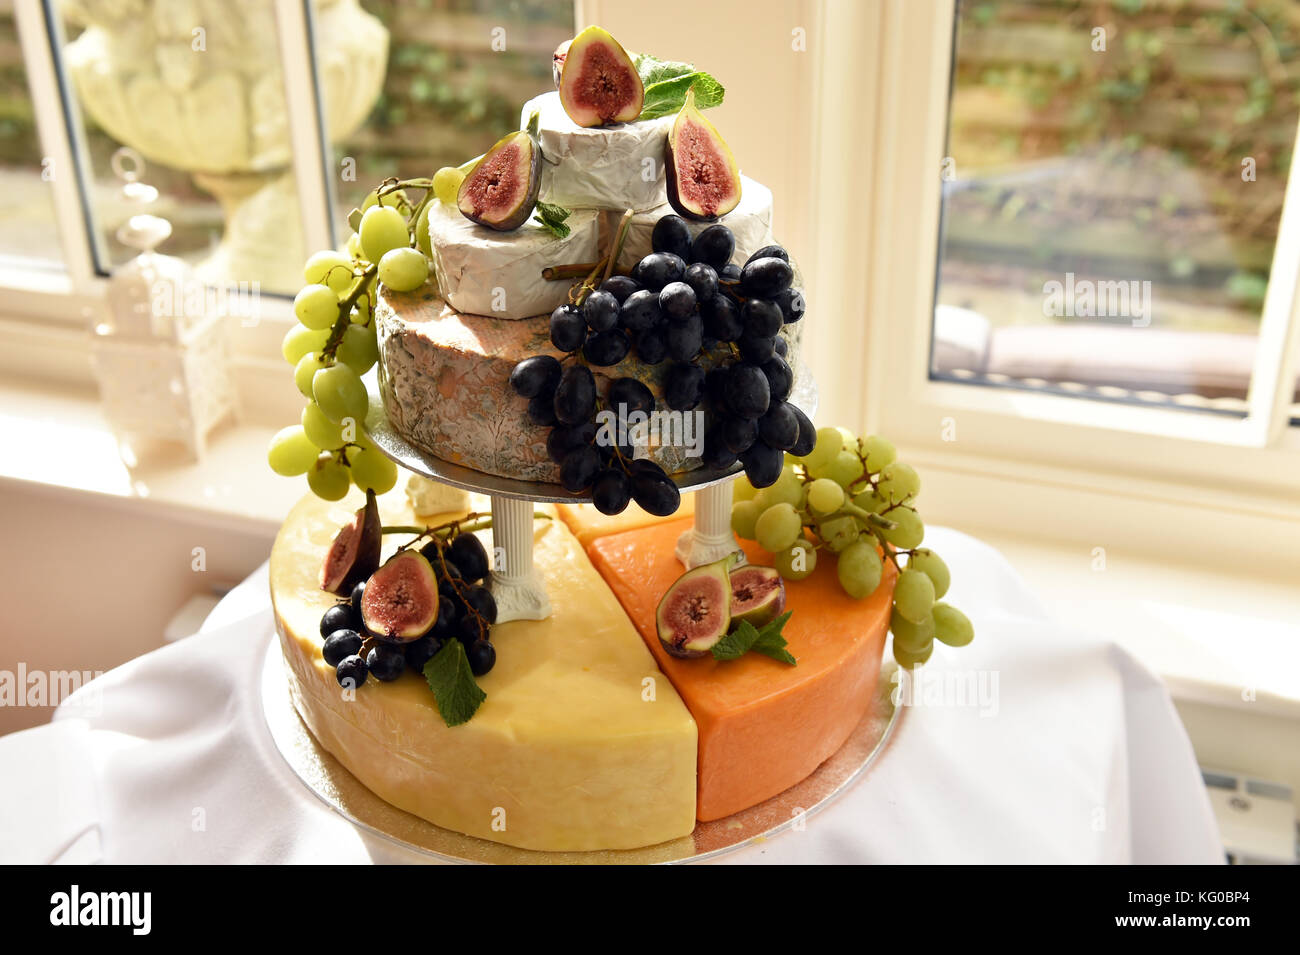 Wedding Cake Made Of Cheeses Stock Photo 164737052 Alamy